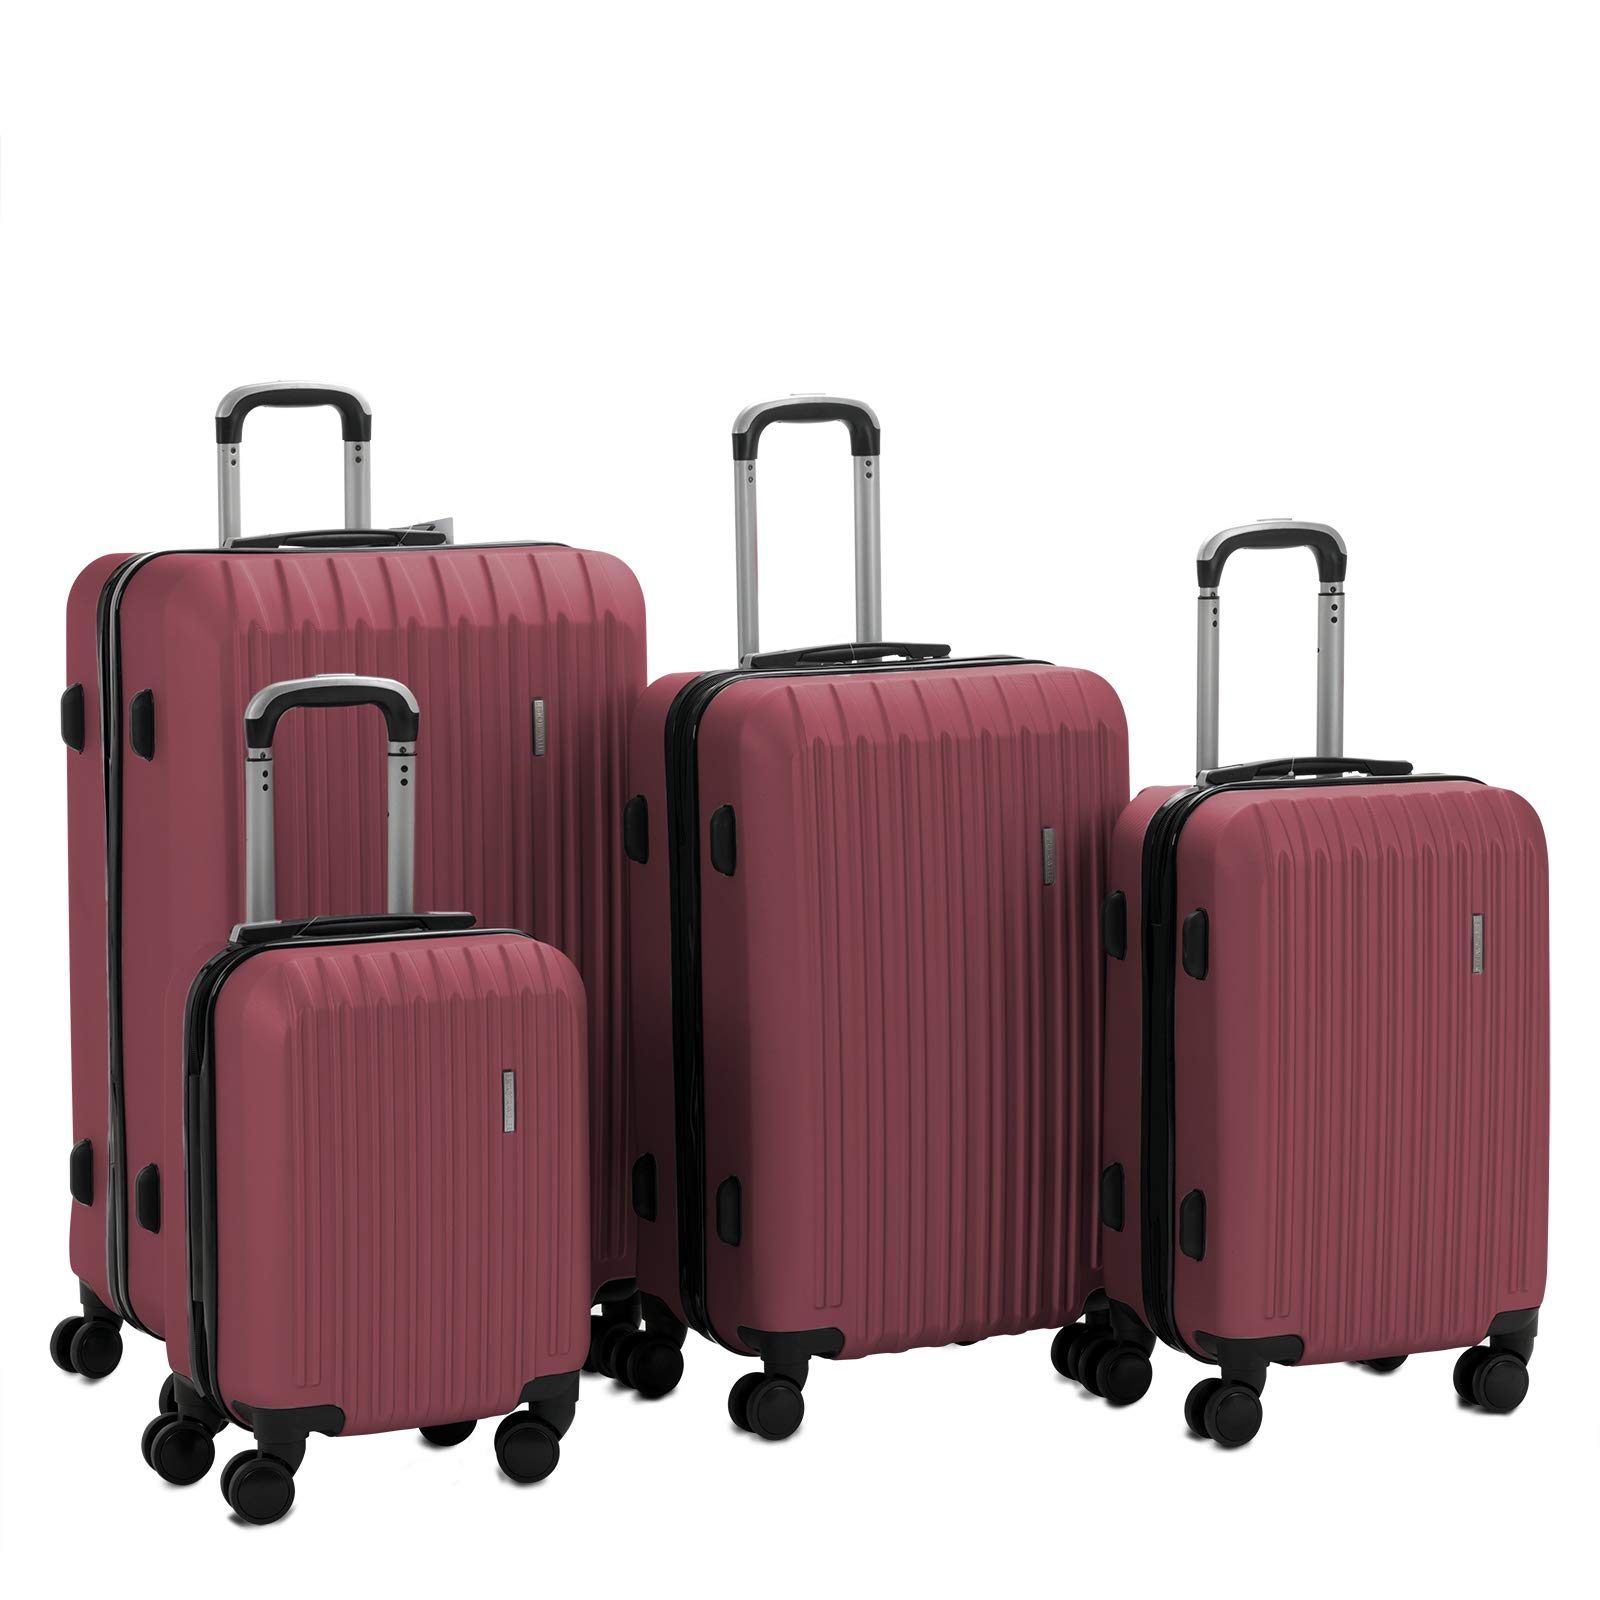 Murtisol 4 Pieces ABS Luggage Sets Hardside Spinner Lightweight Durable Spinner Suitcase 16'' 20'' 24'' 28'', 4PCS Wine Red